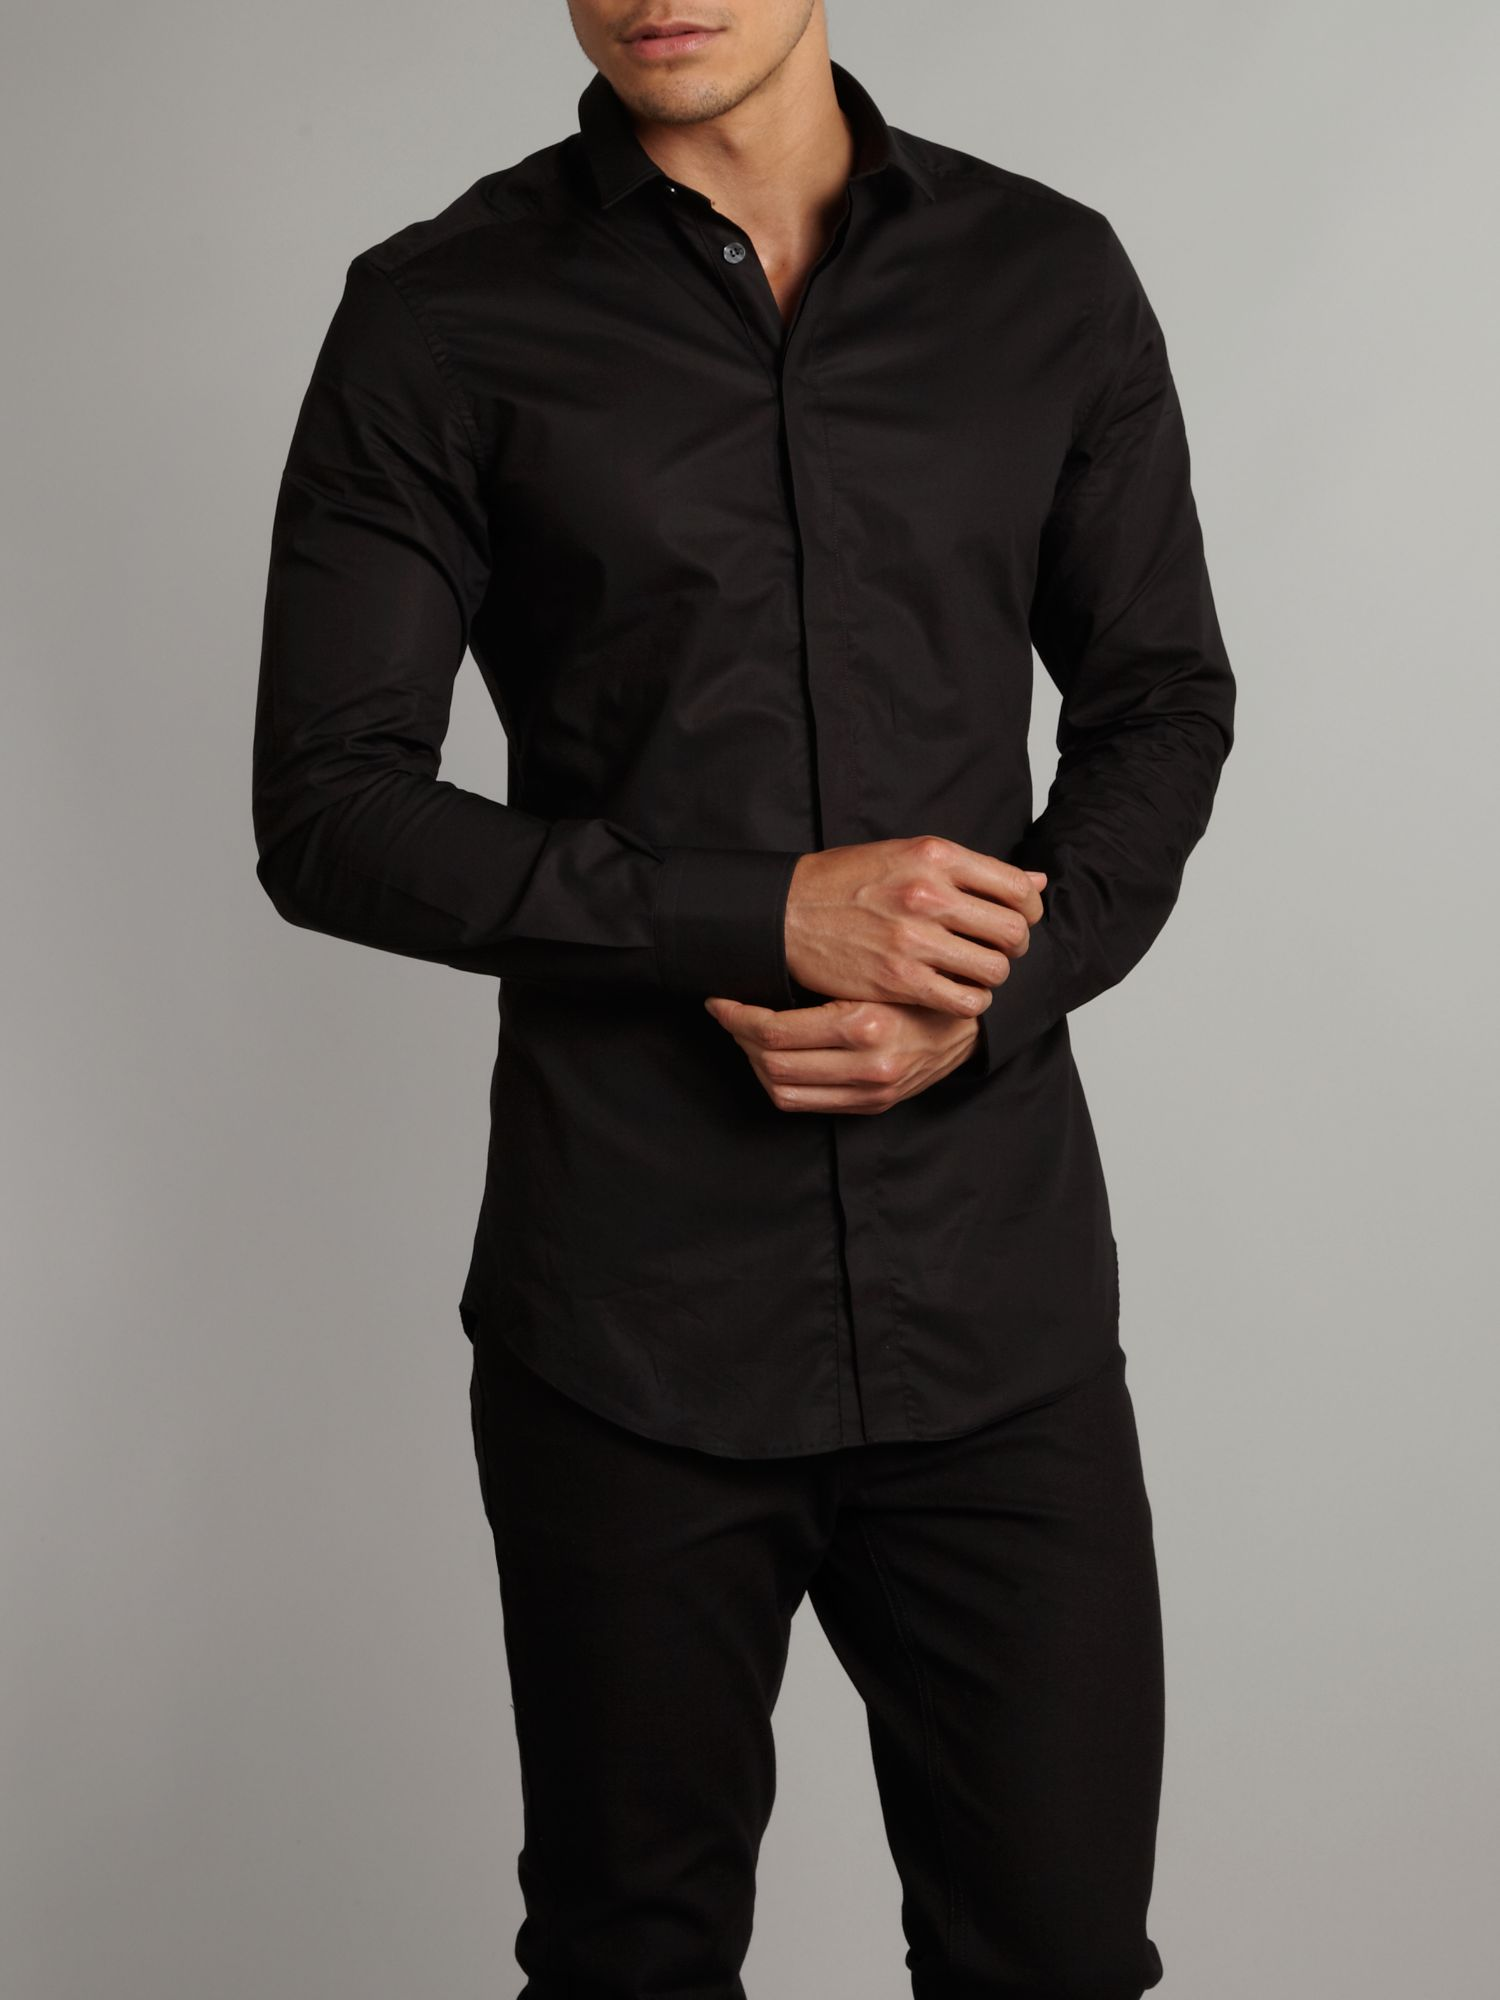 COOGI Luxe Men's Black and Red Button-down Dress Shirt. Sold by trueiupnbp.gq $ $ COOGI Luxe Men's Black Button-down Dress Shirt. TOPS Women Turn Down Collar Roll Up Sleeve Belted Button Down Shirt Dress Plus Size. Sold by Top Selling. $ - $ $ - $